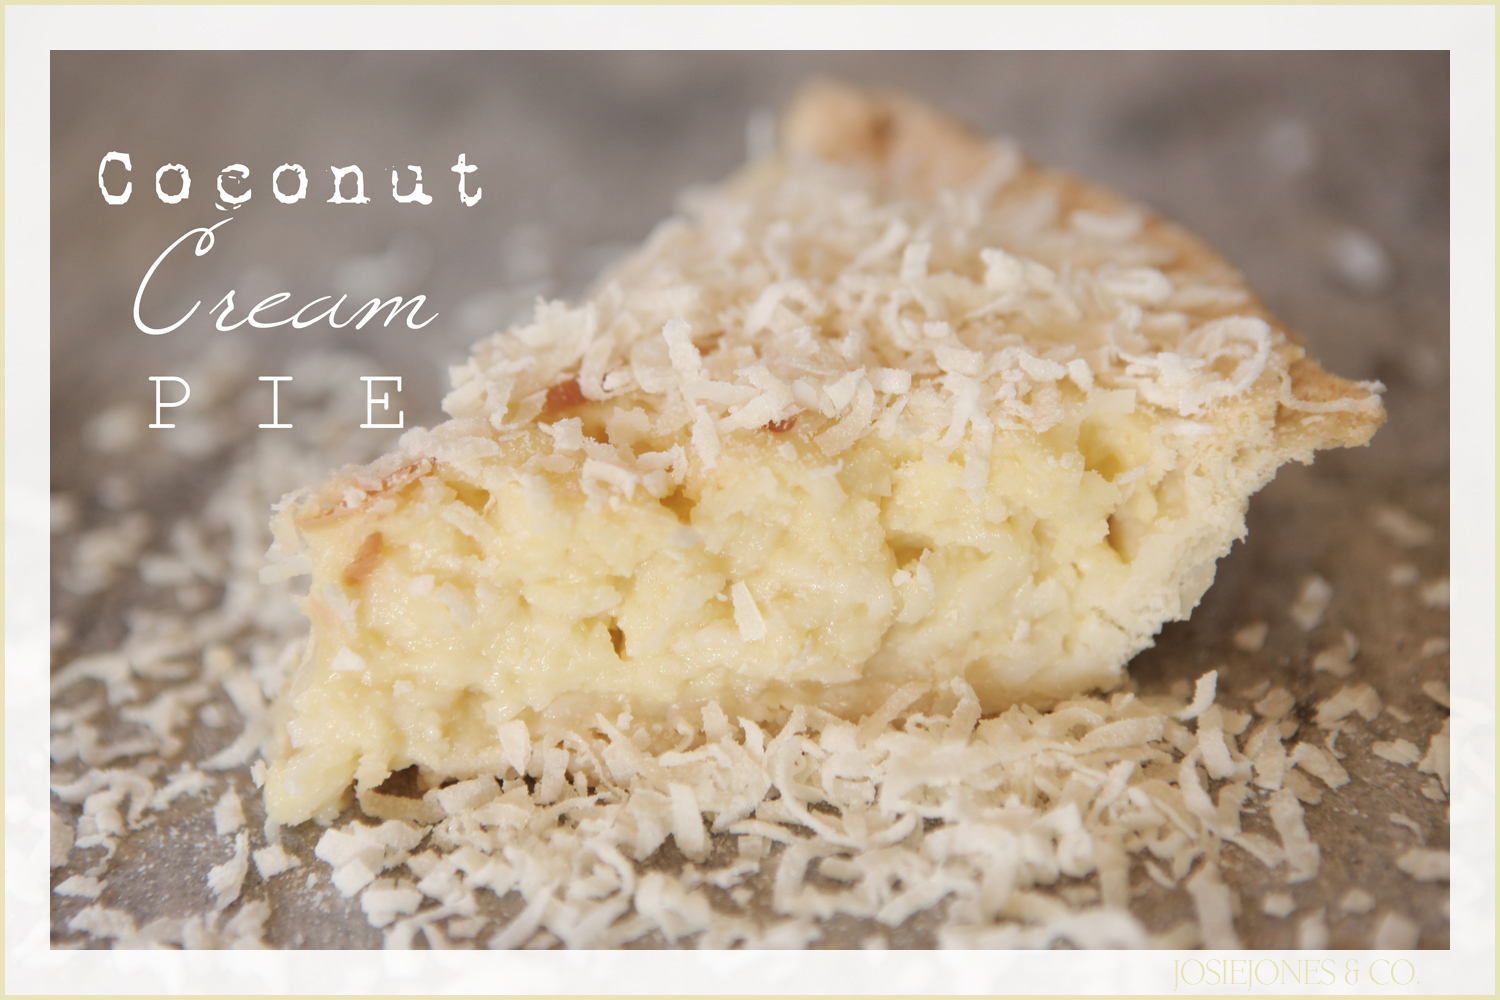 Coconut Cream Pie Recipe - The 36th AVENUE